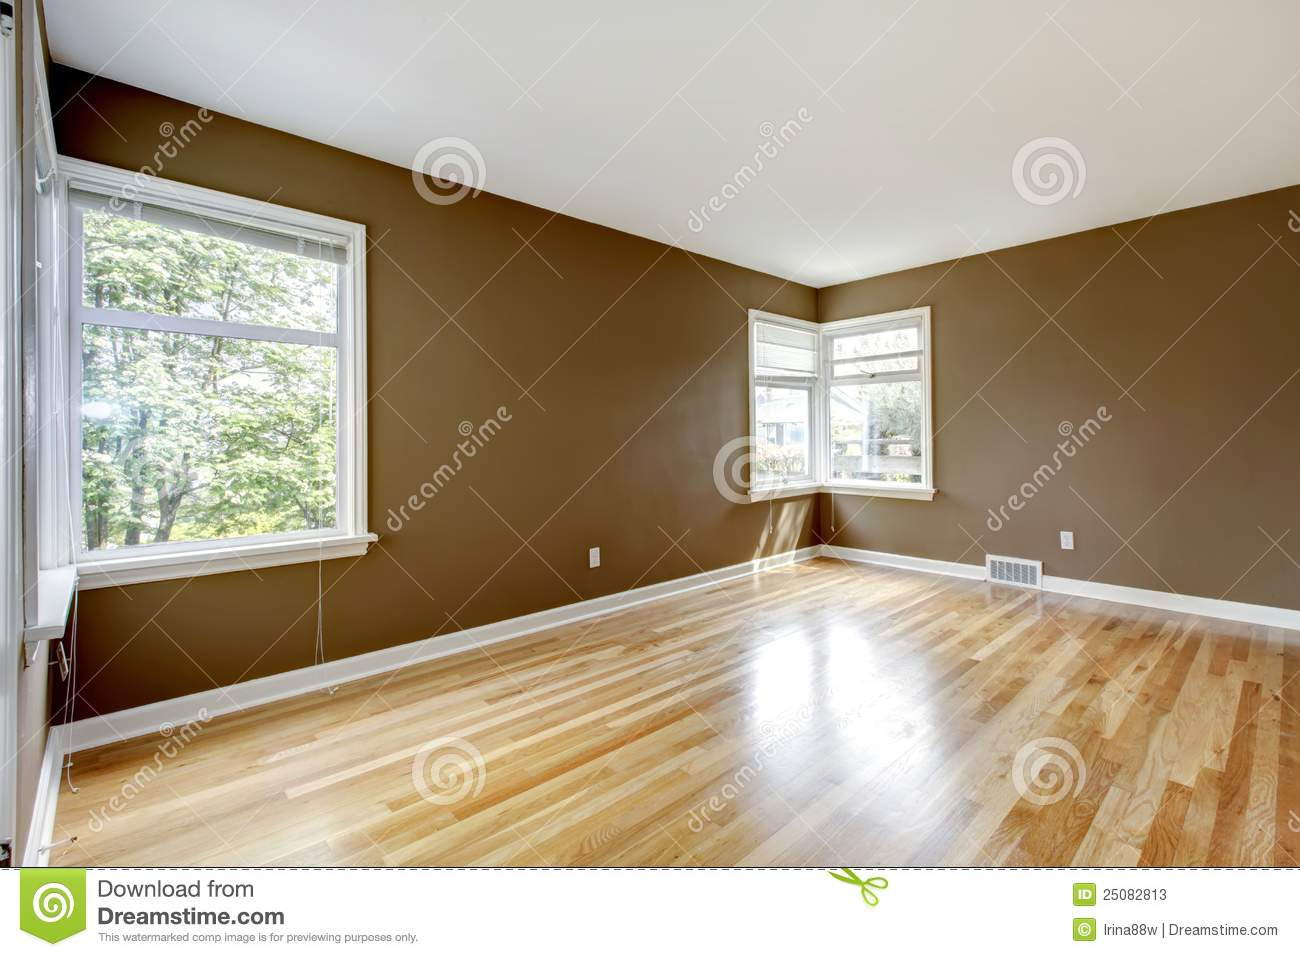 Empty Room With Brown Walls And Hardwood Floor. Stock